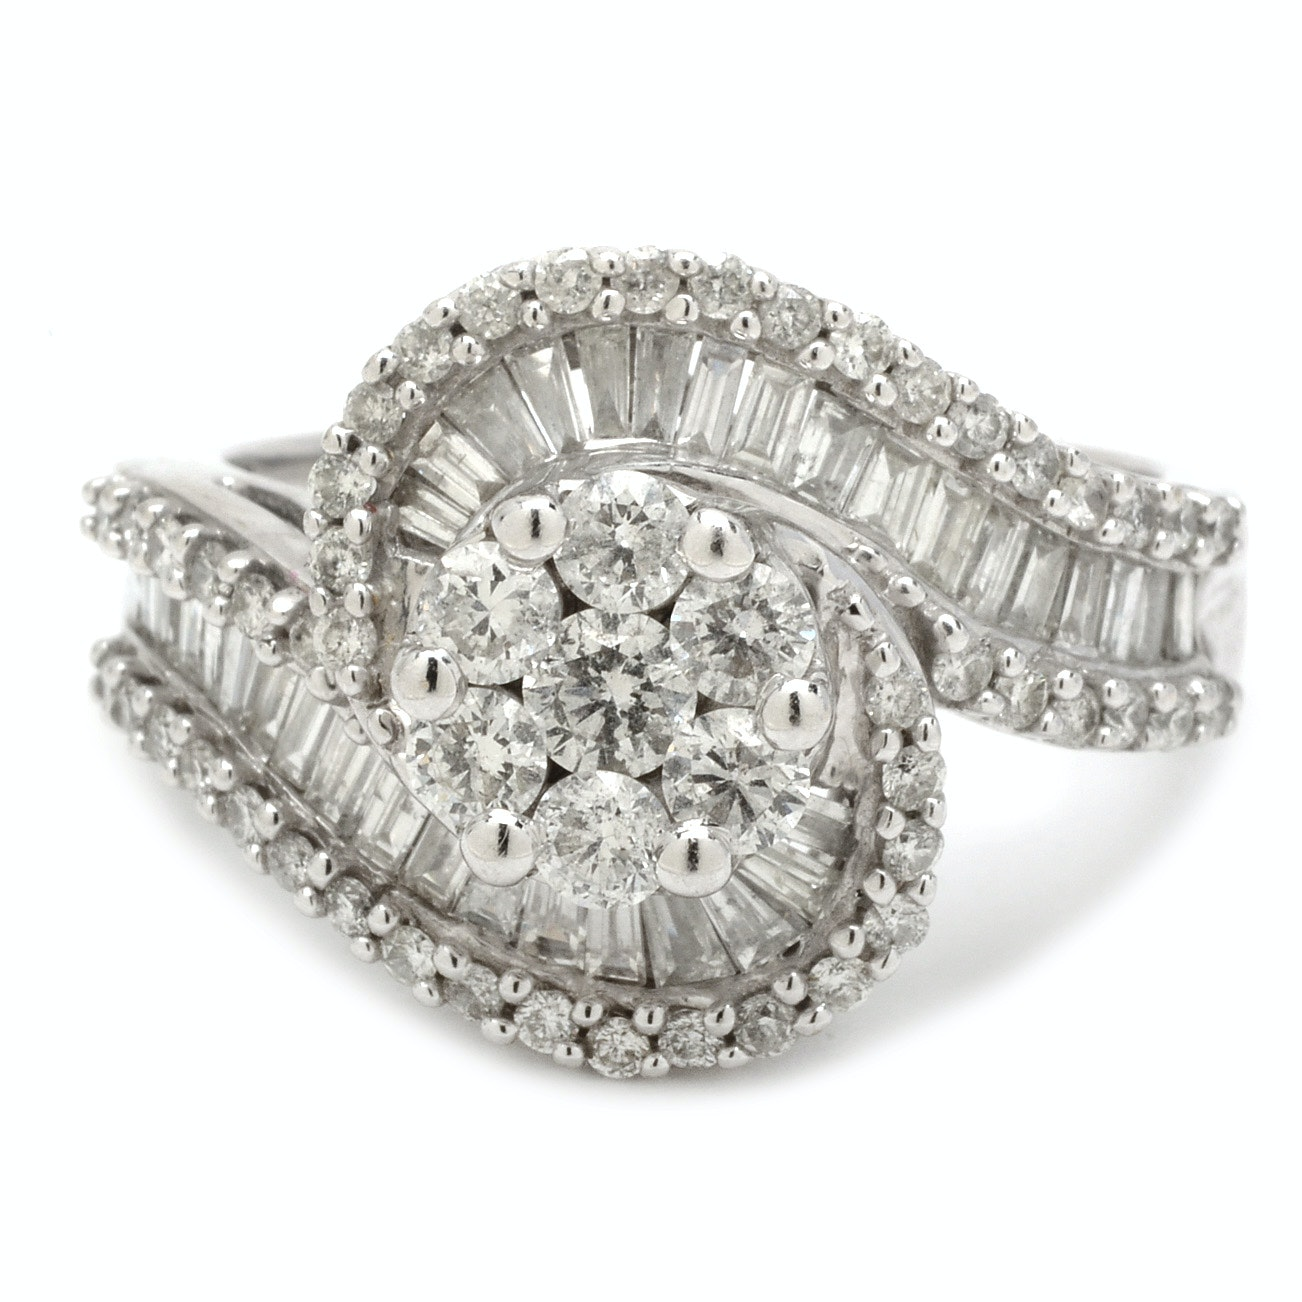 14K White Gold 1.95 CTW Diamond Bypass Cluster Ring